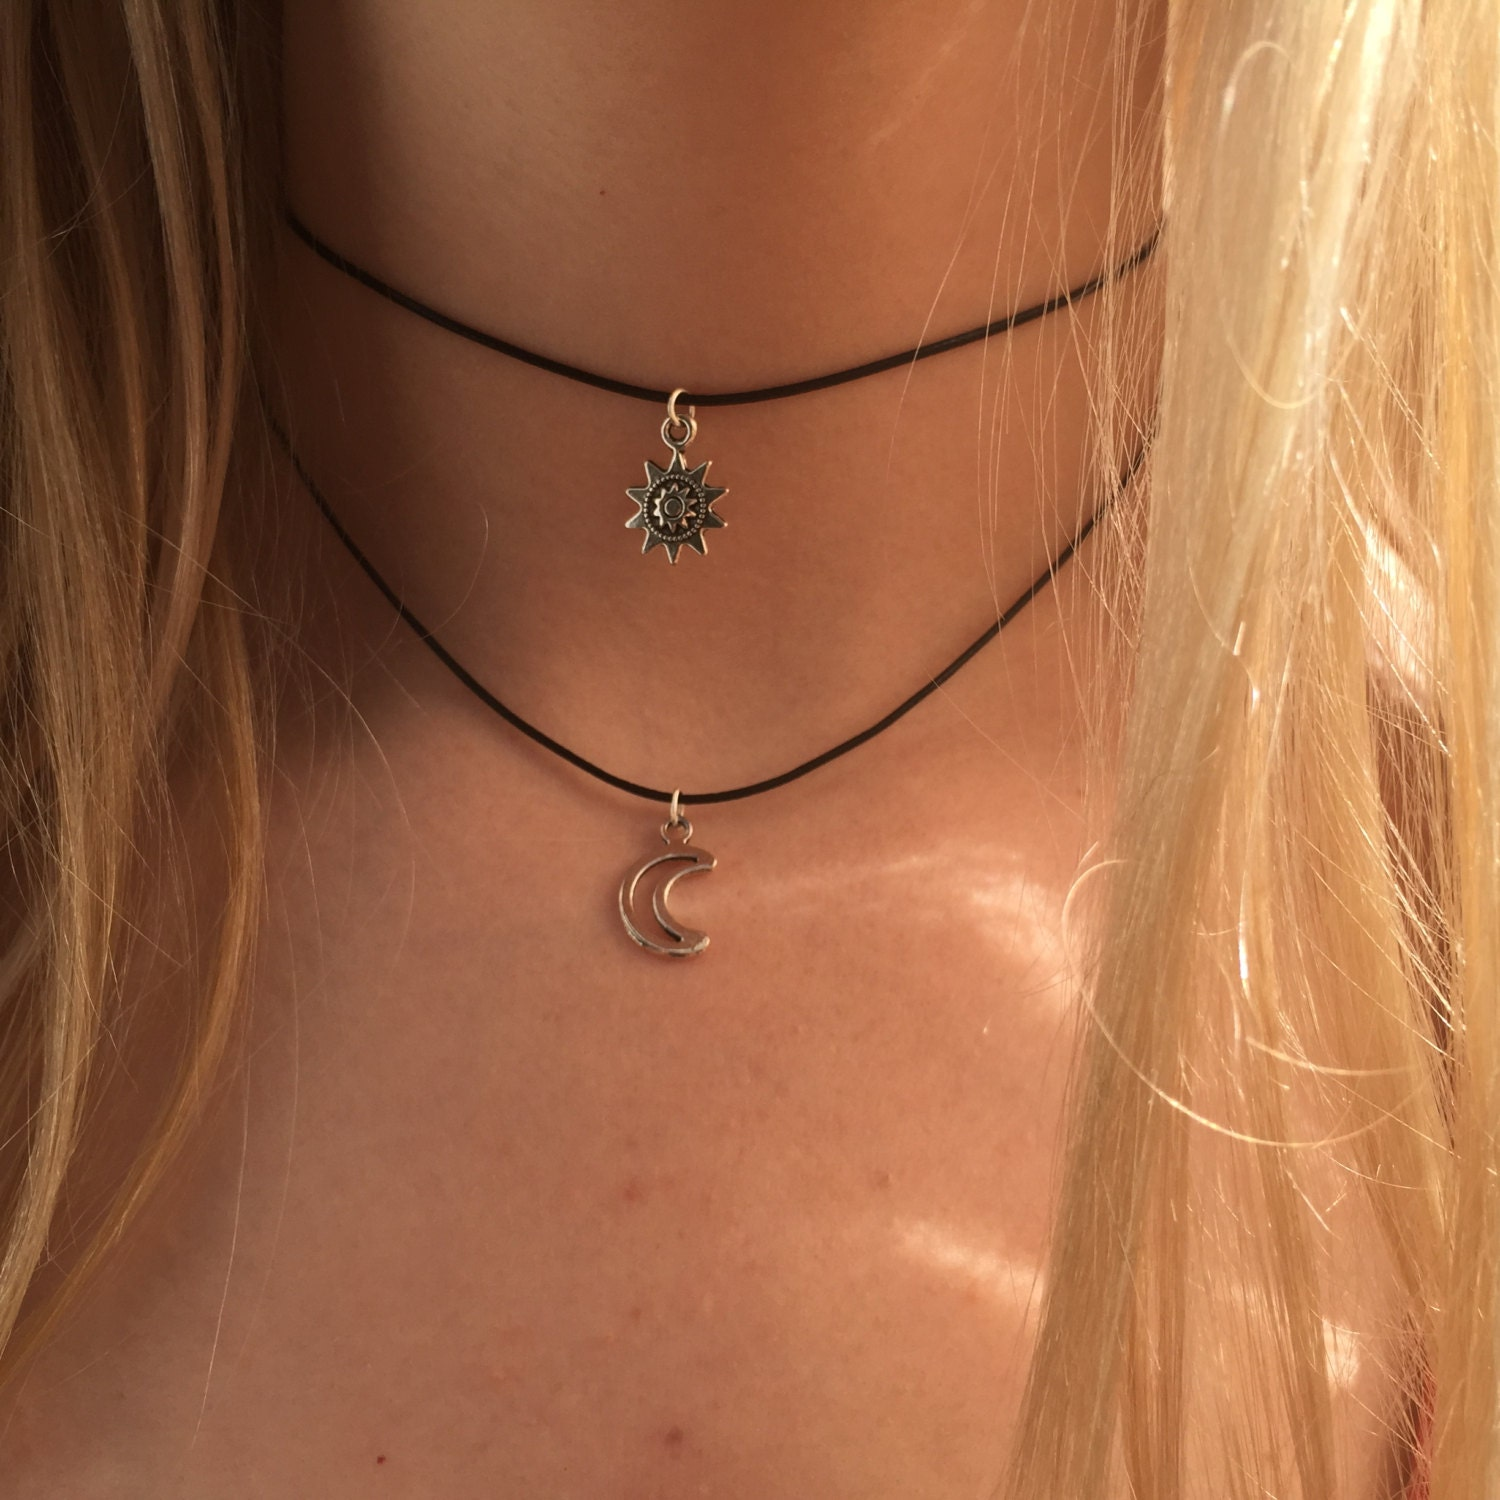 Double choker necklace silver sun and moon charms 90s Layered